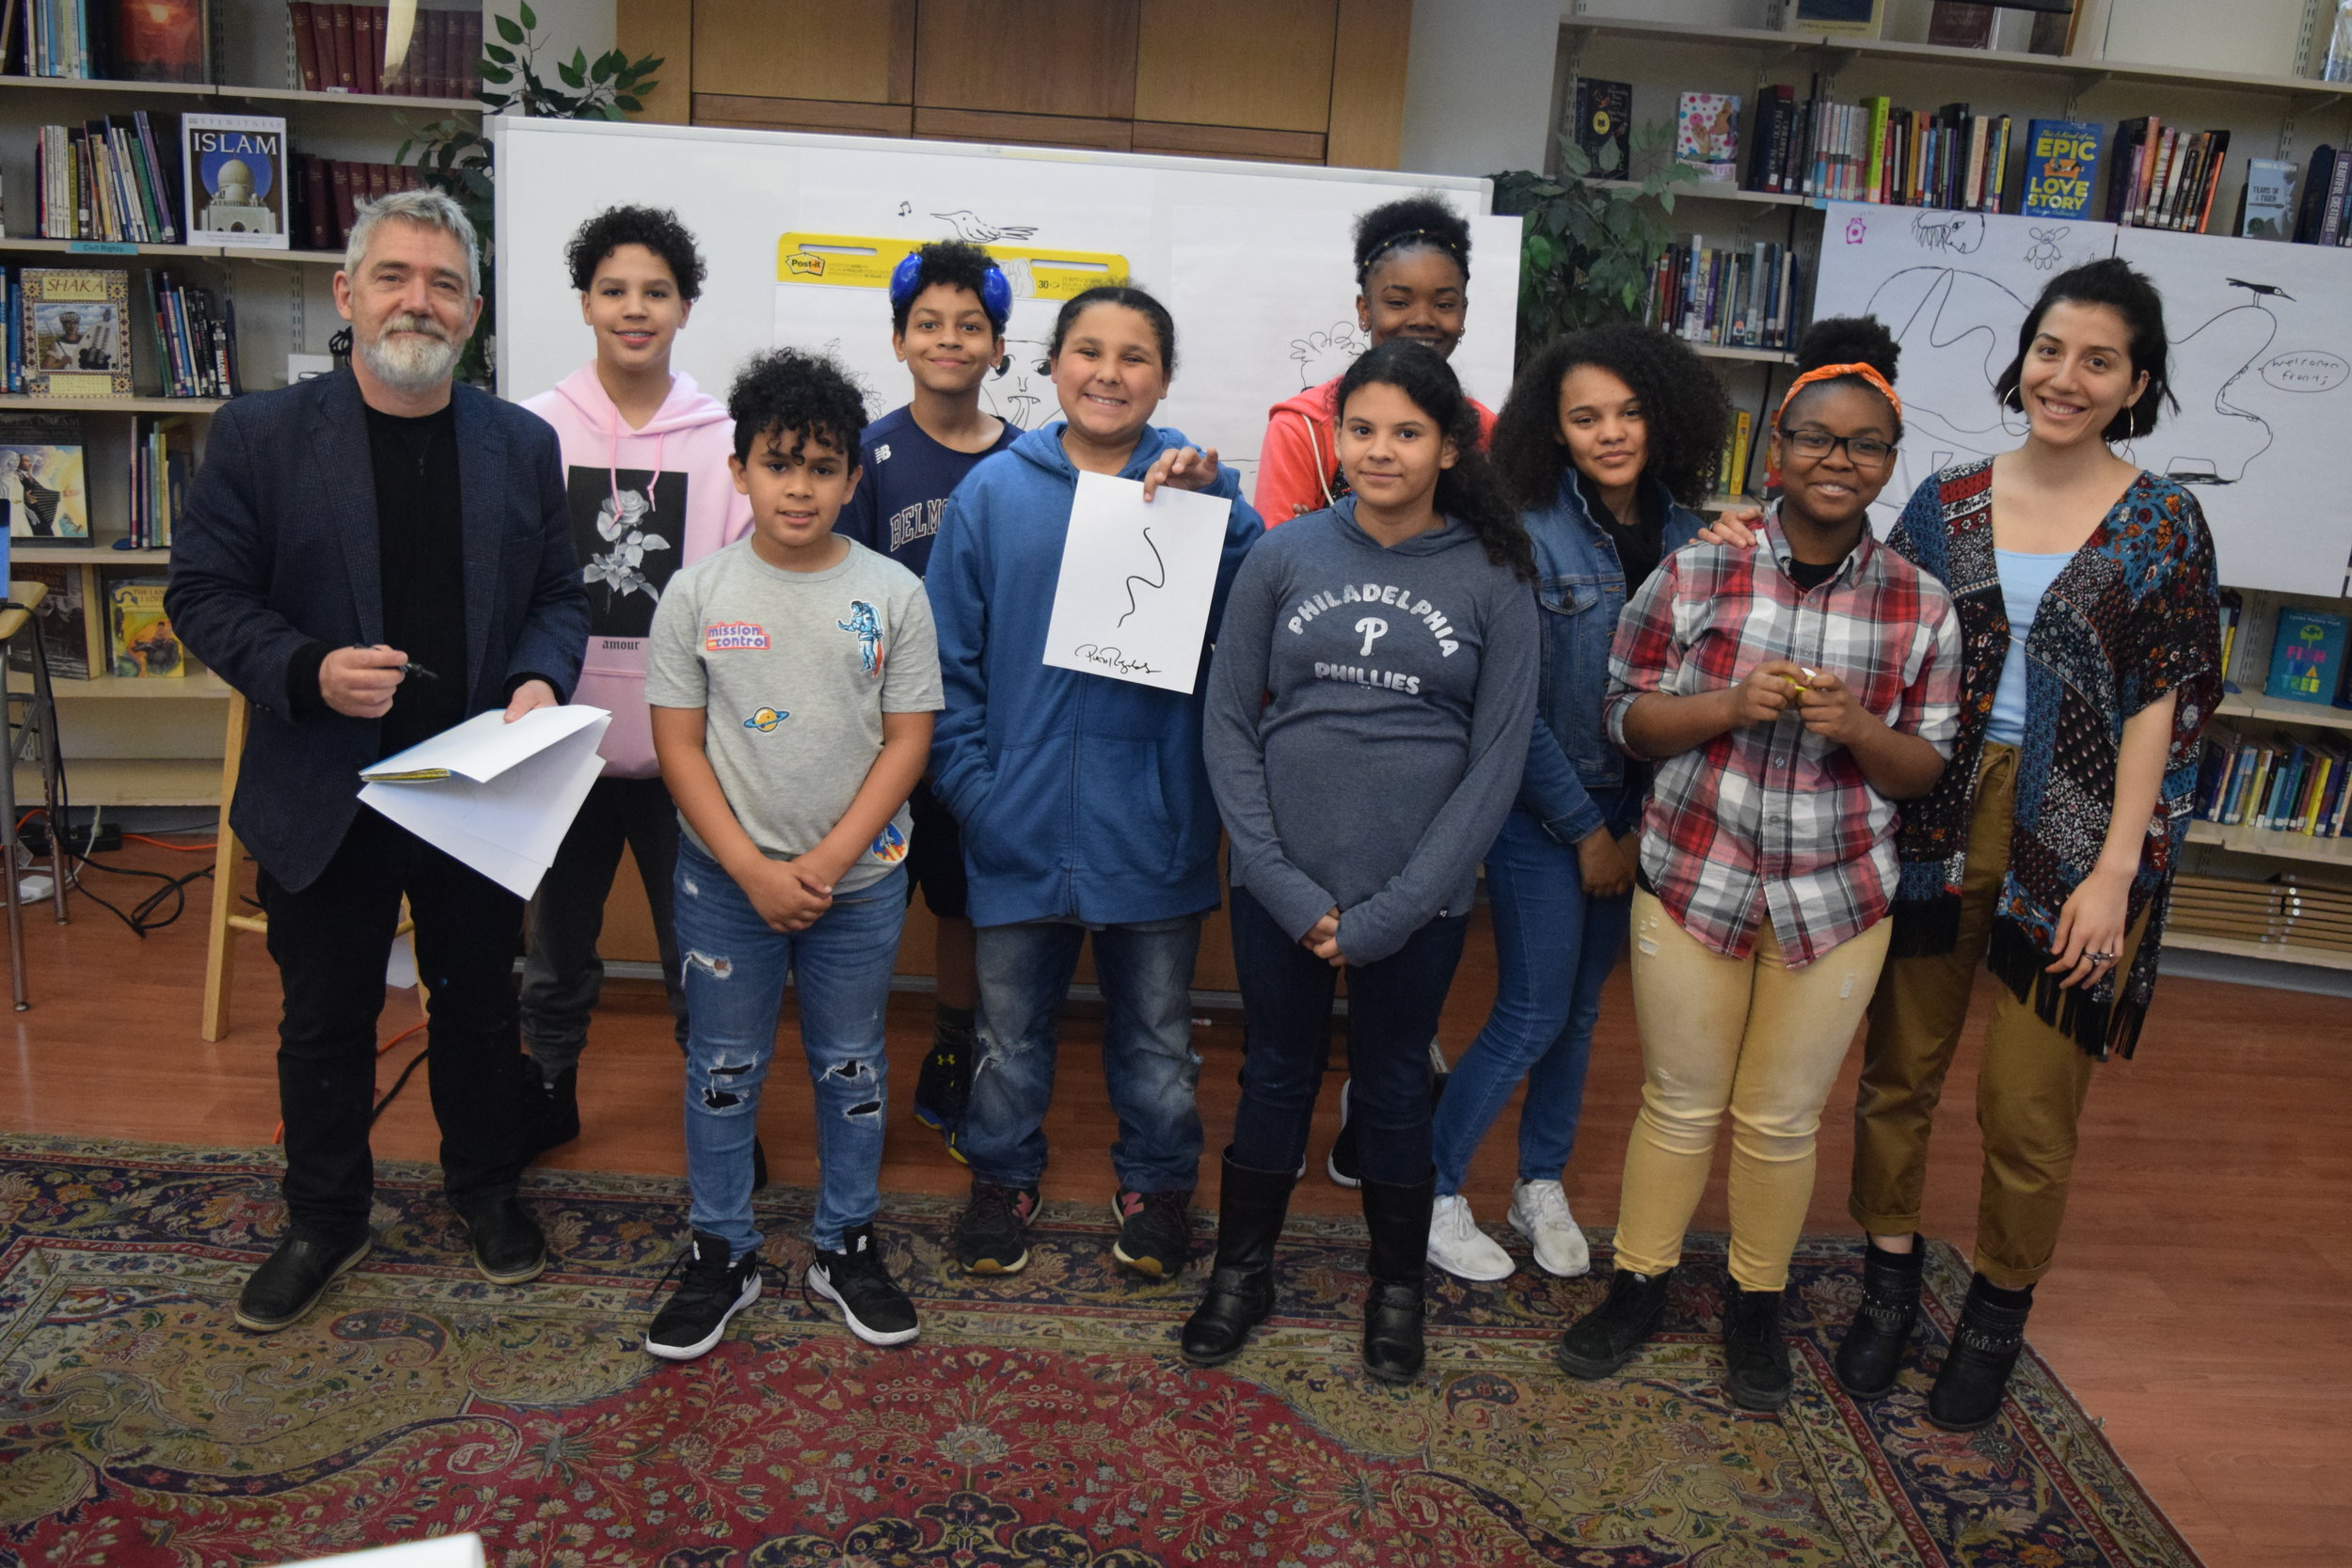 Peter Reynolds with the Illustration Arts Elective .